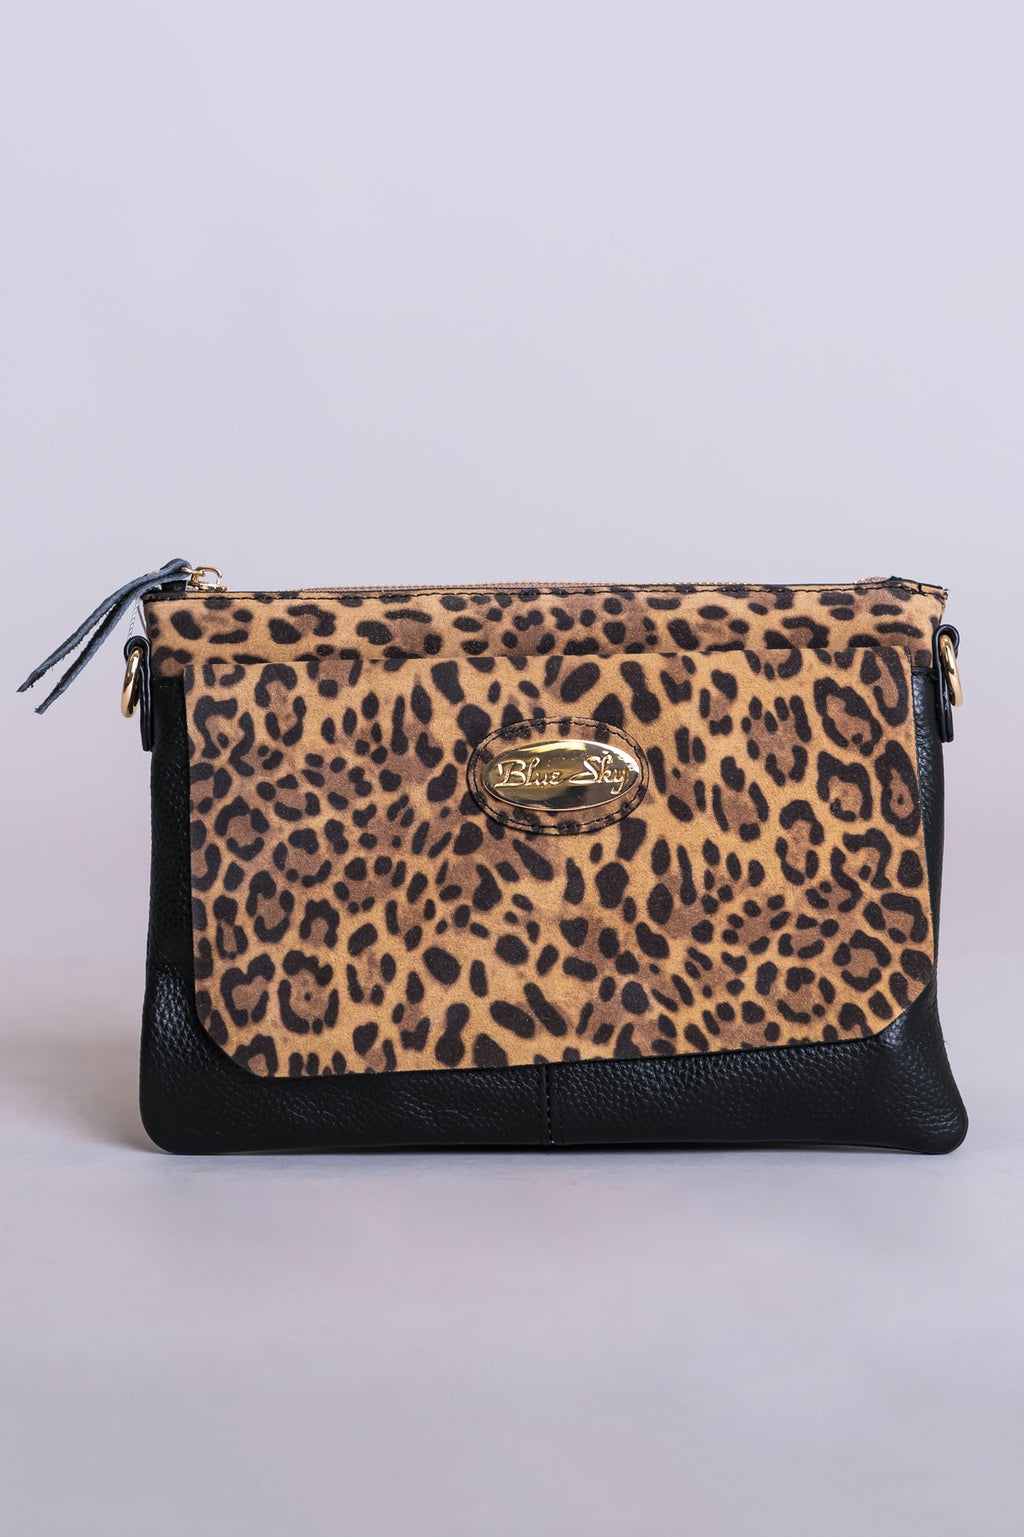 Raja Bag, Leopard - Blue Sky Clothing Co